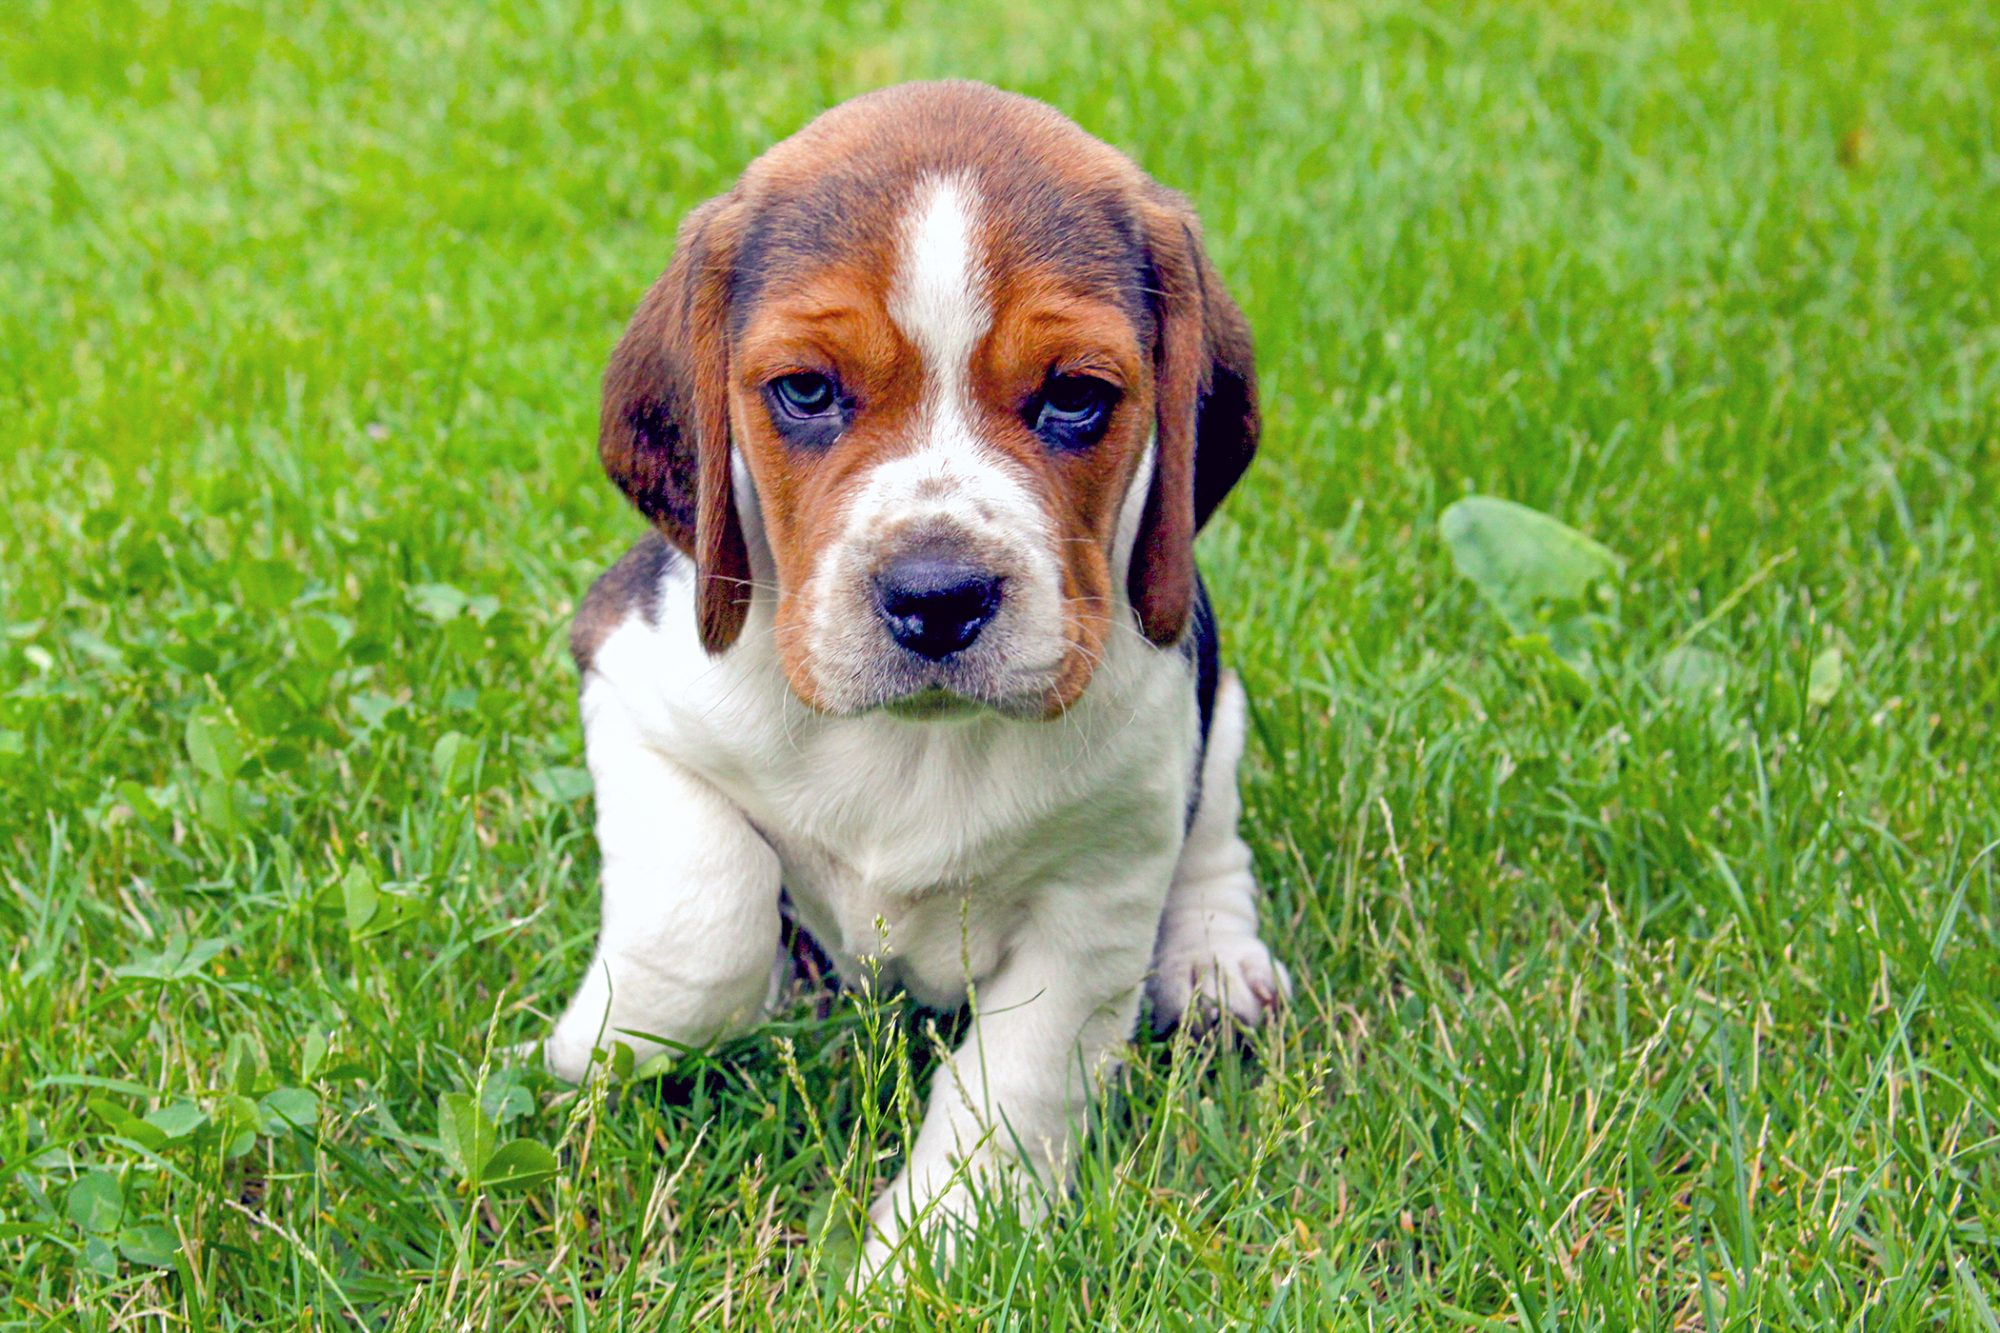 Beagle puppy sits in green grass